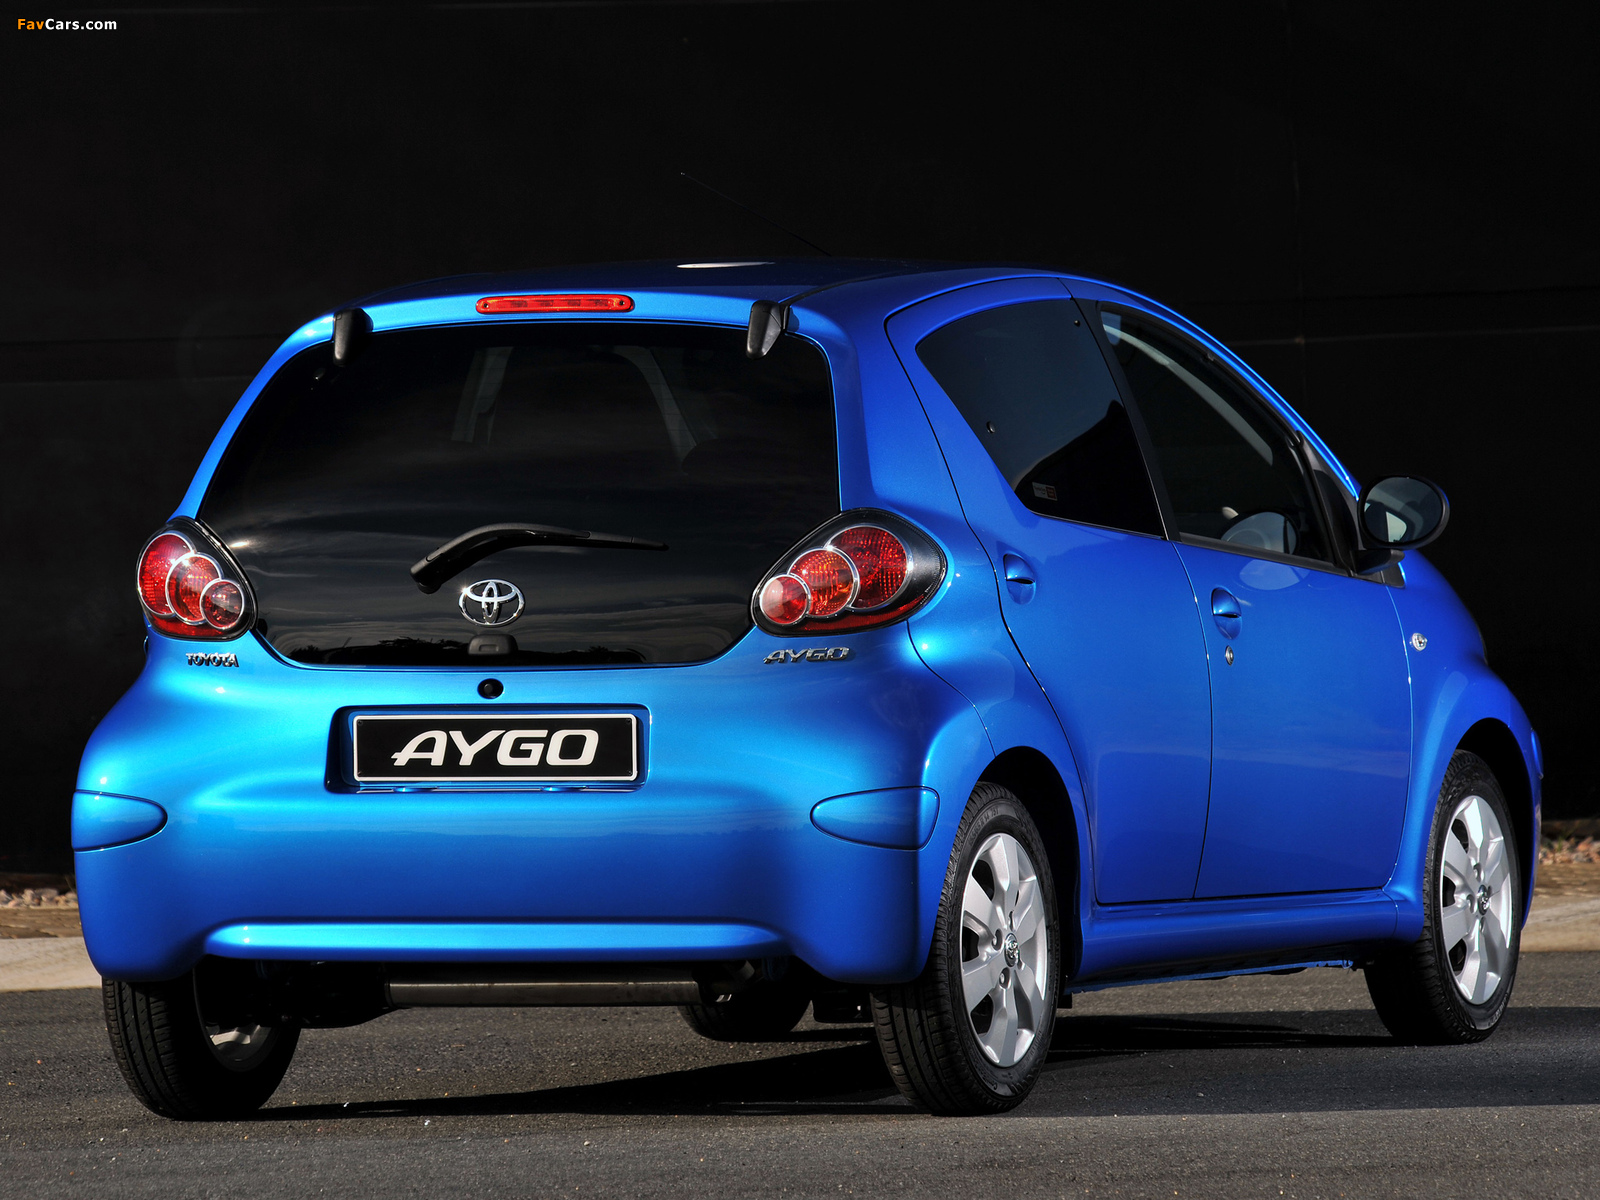 toyota aygo 5 door za spec 2008 images 1600x1200. Black Bedroom Furniture Sets. Home Design Ideas